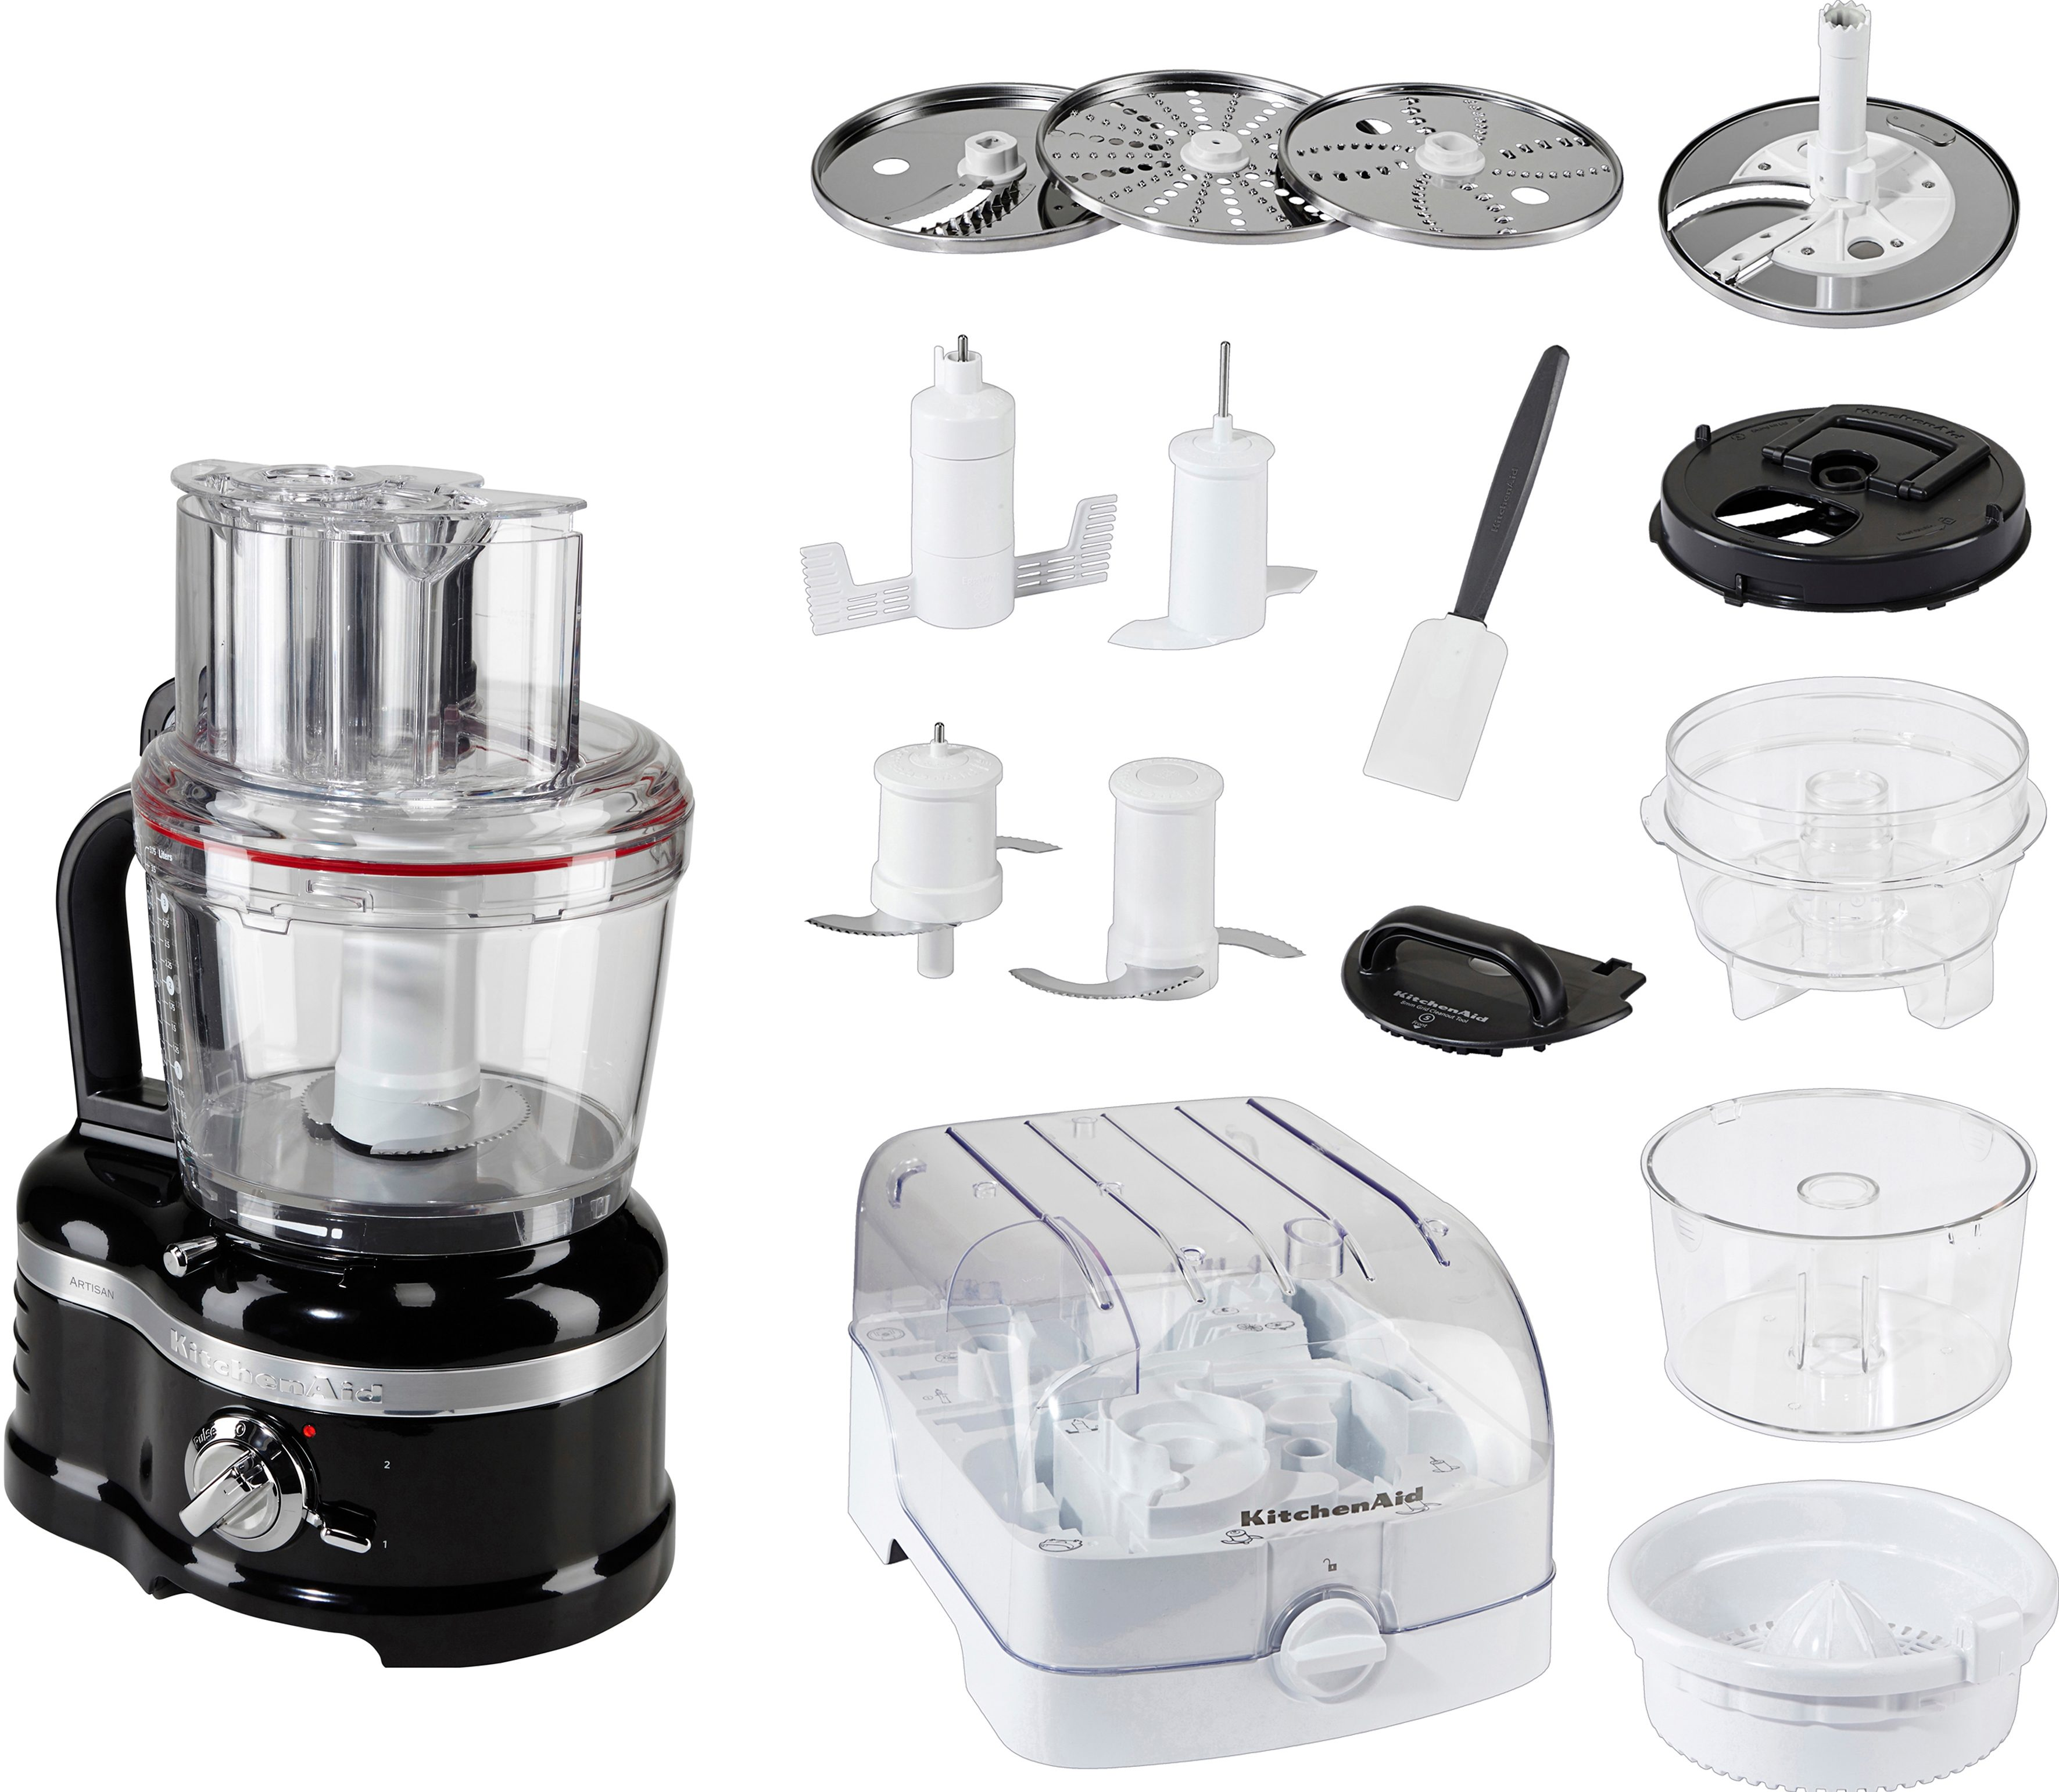 4 Liter KitchenAid Food Processor Artisan 5KFP1644EOB